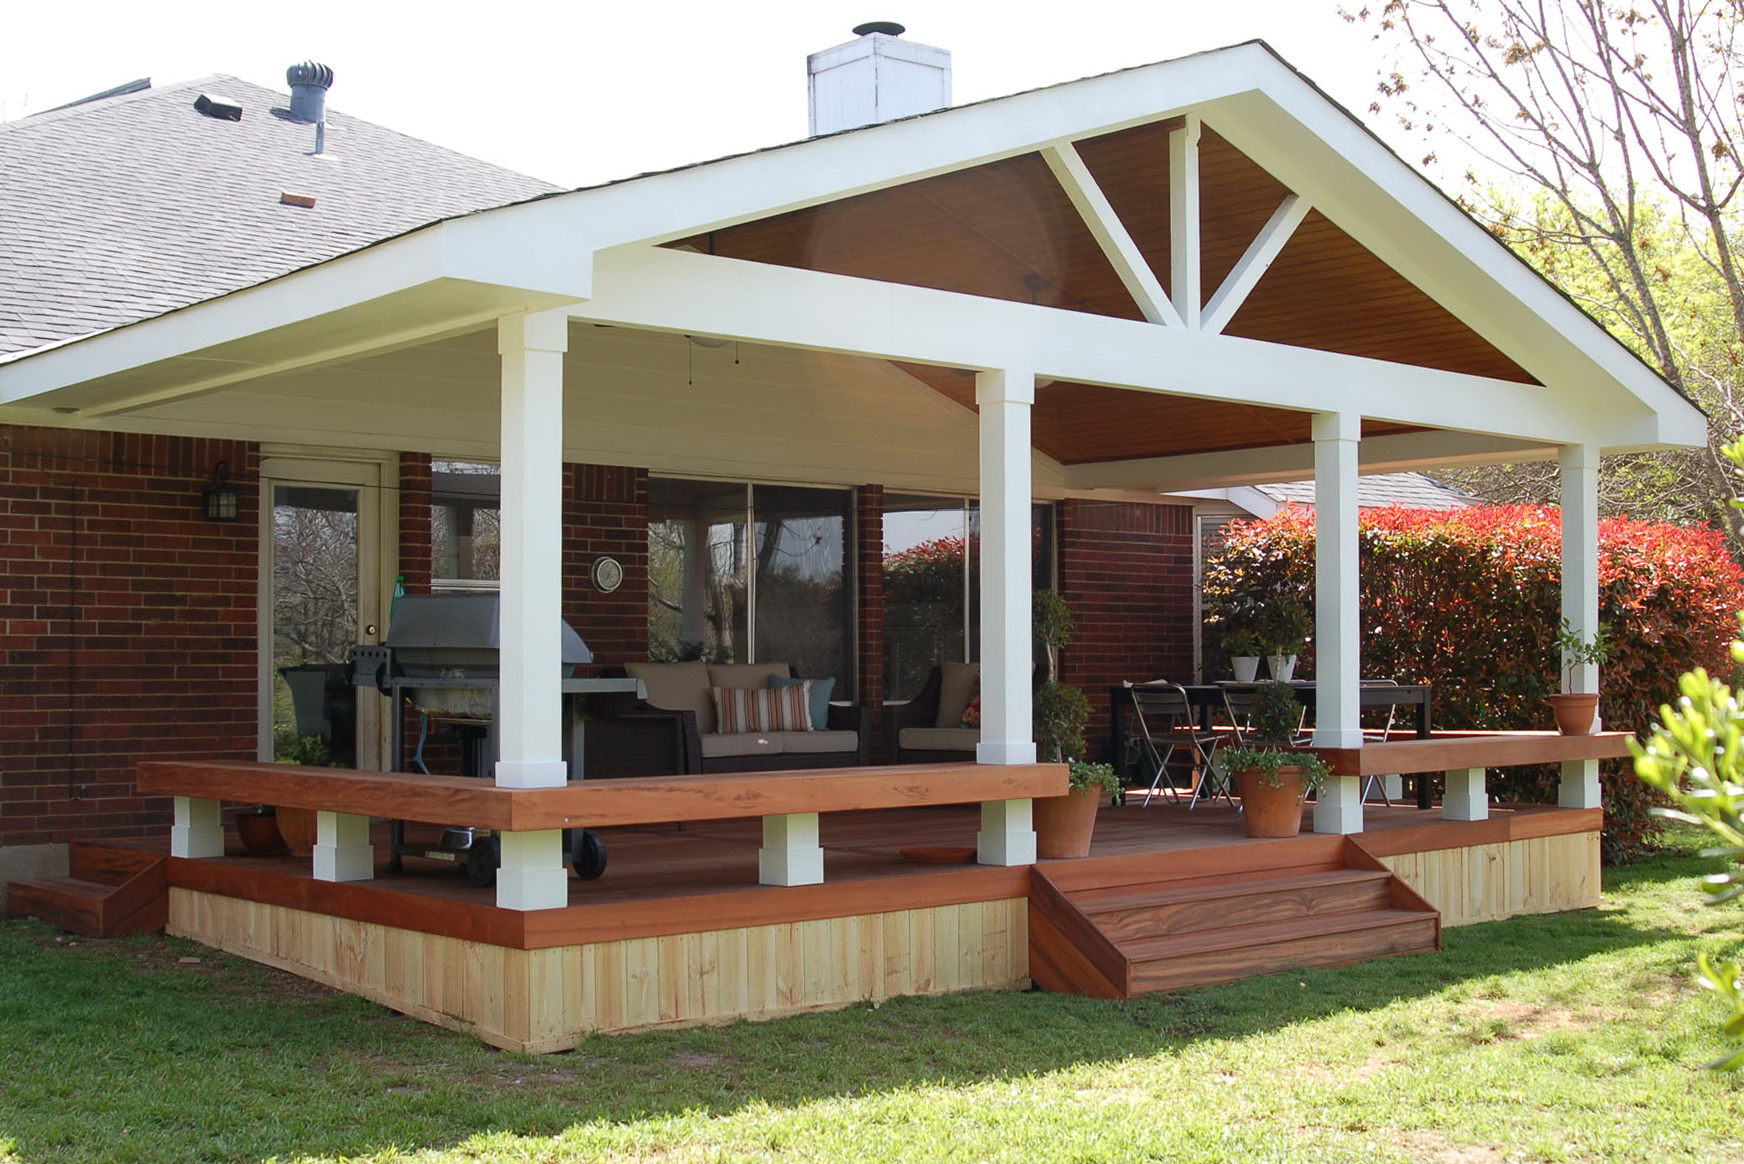 Covered Decks Offers an Extra Place To Enjoy - CareHomeDecor on Covered Back Deck Ideas id=96824